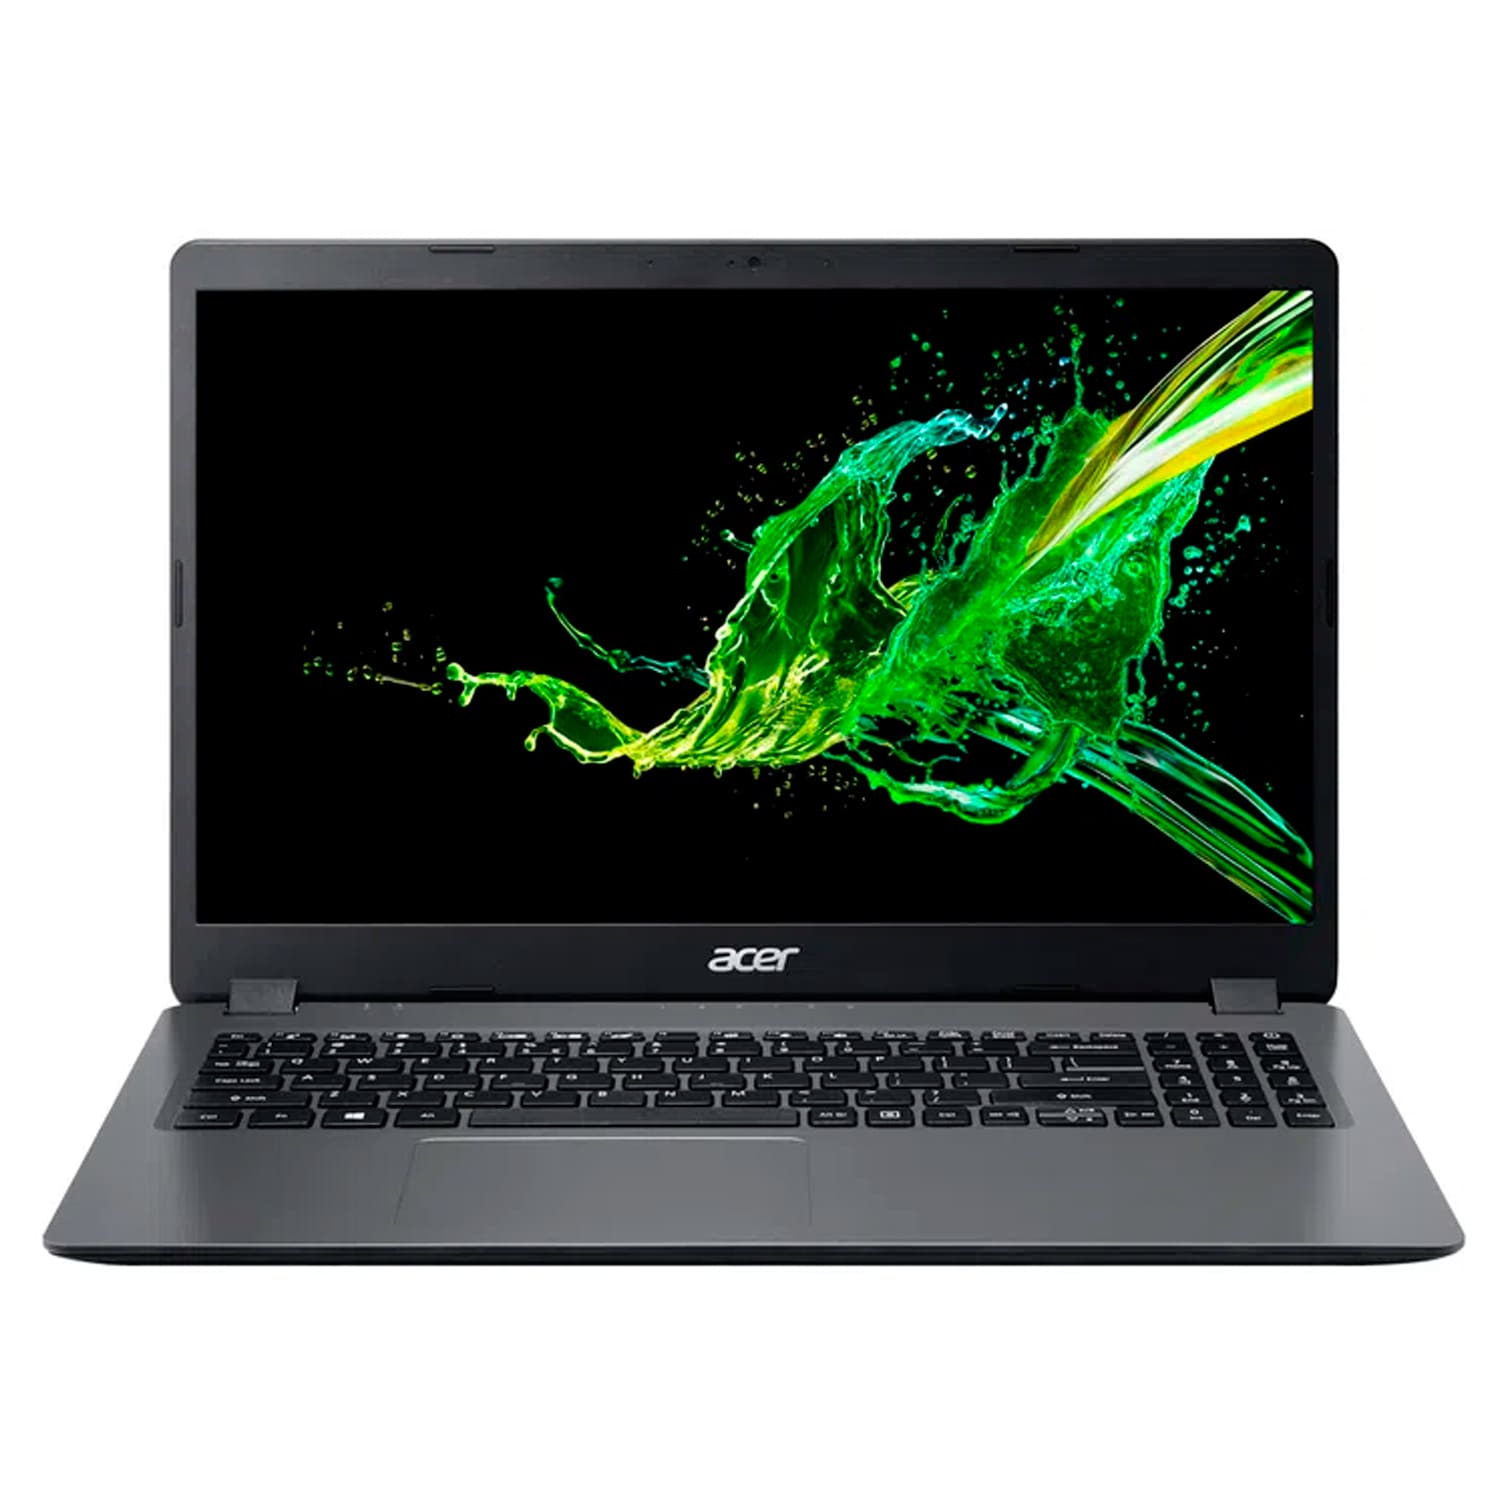 Notebook Acer A315 Intel Core I5-10210u Memoria 8gb Ssd 256gb Tela 15.6' Windows 10 Home Cinza